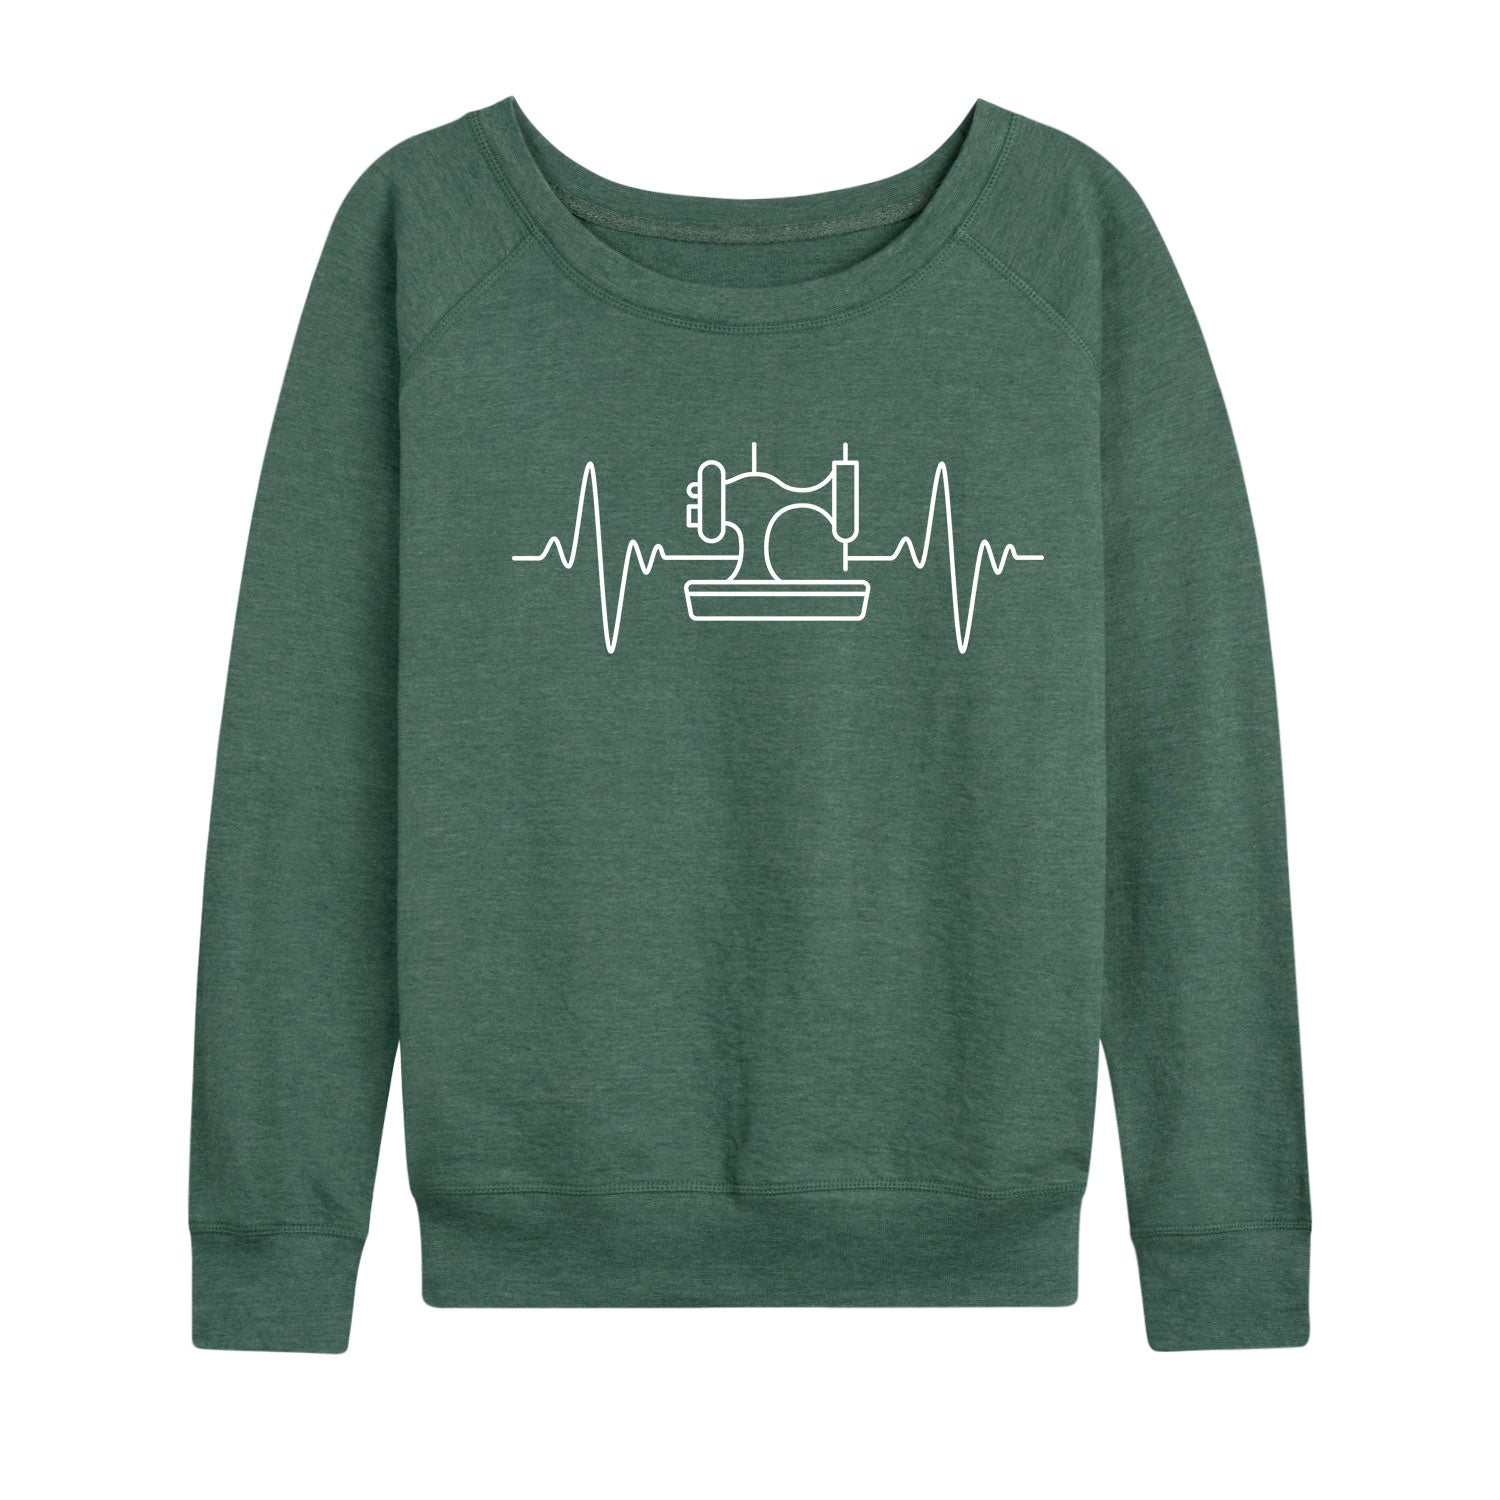 Sewing Machine EKG - Women's Slouchy